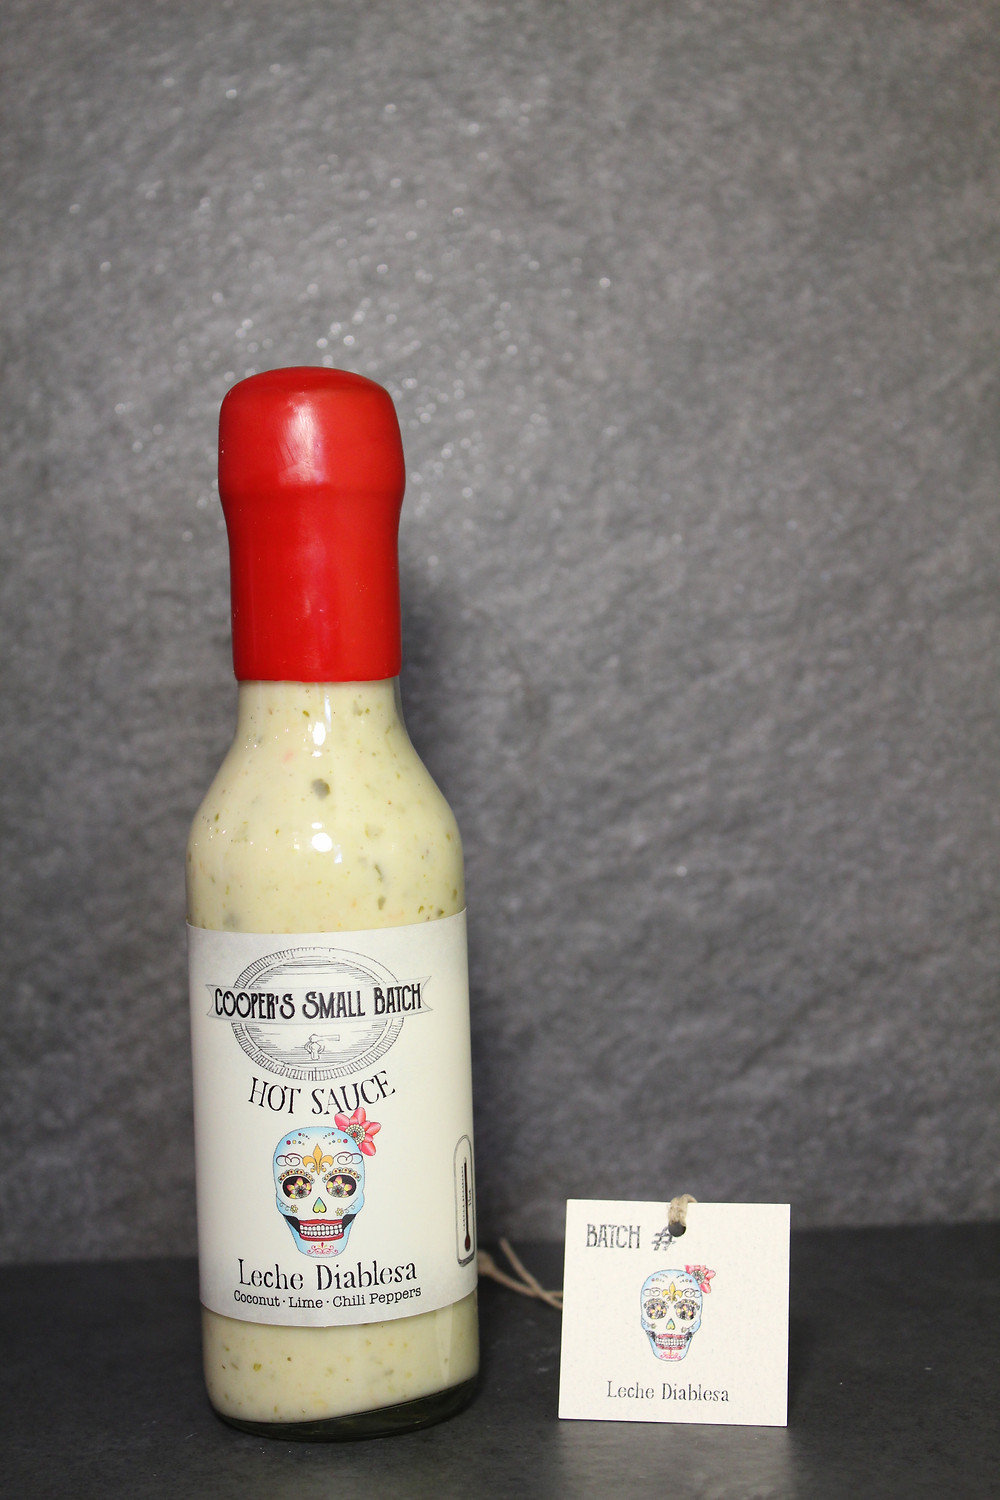 Colorado Hot Sauce Companies - White Hot Sauce